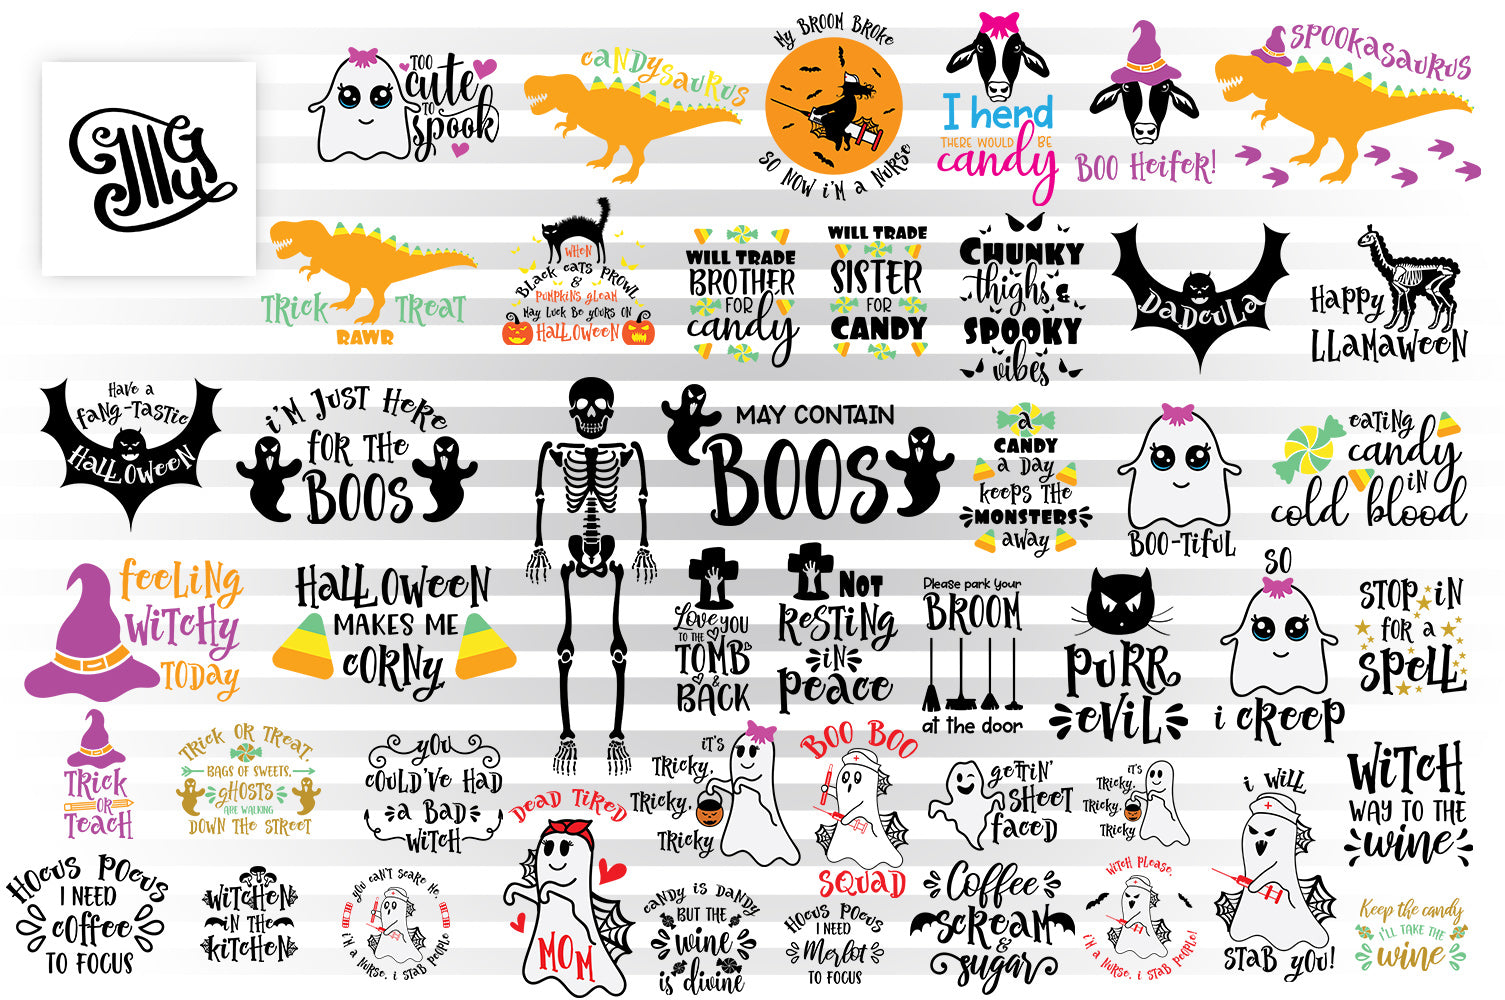 Halloween SVG Bundle, Halloween Sayings Clipart, Witch Sublimation Images, Dinosaur Cut Files, Halloween Kids SVG Designs, SVG Quotes, Witch Hat SVG, Skeleton SVG, Cute Ghost SVG, Halloween Party SVG, Drinking SVG, Nurse SVG, Mom SVG, Dad SVG-by Illustrator Guru